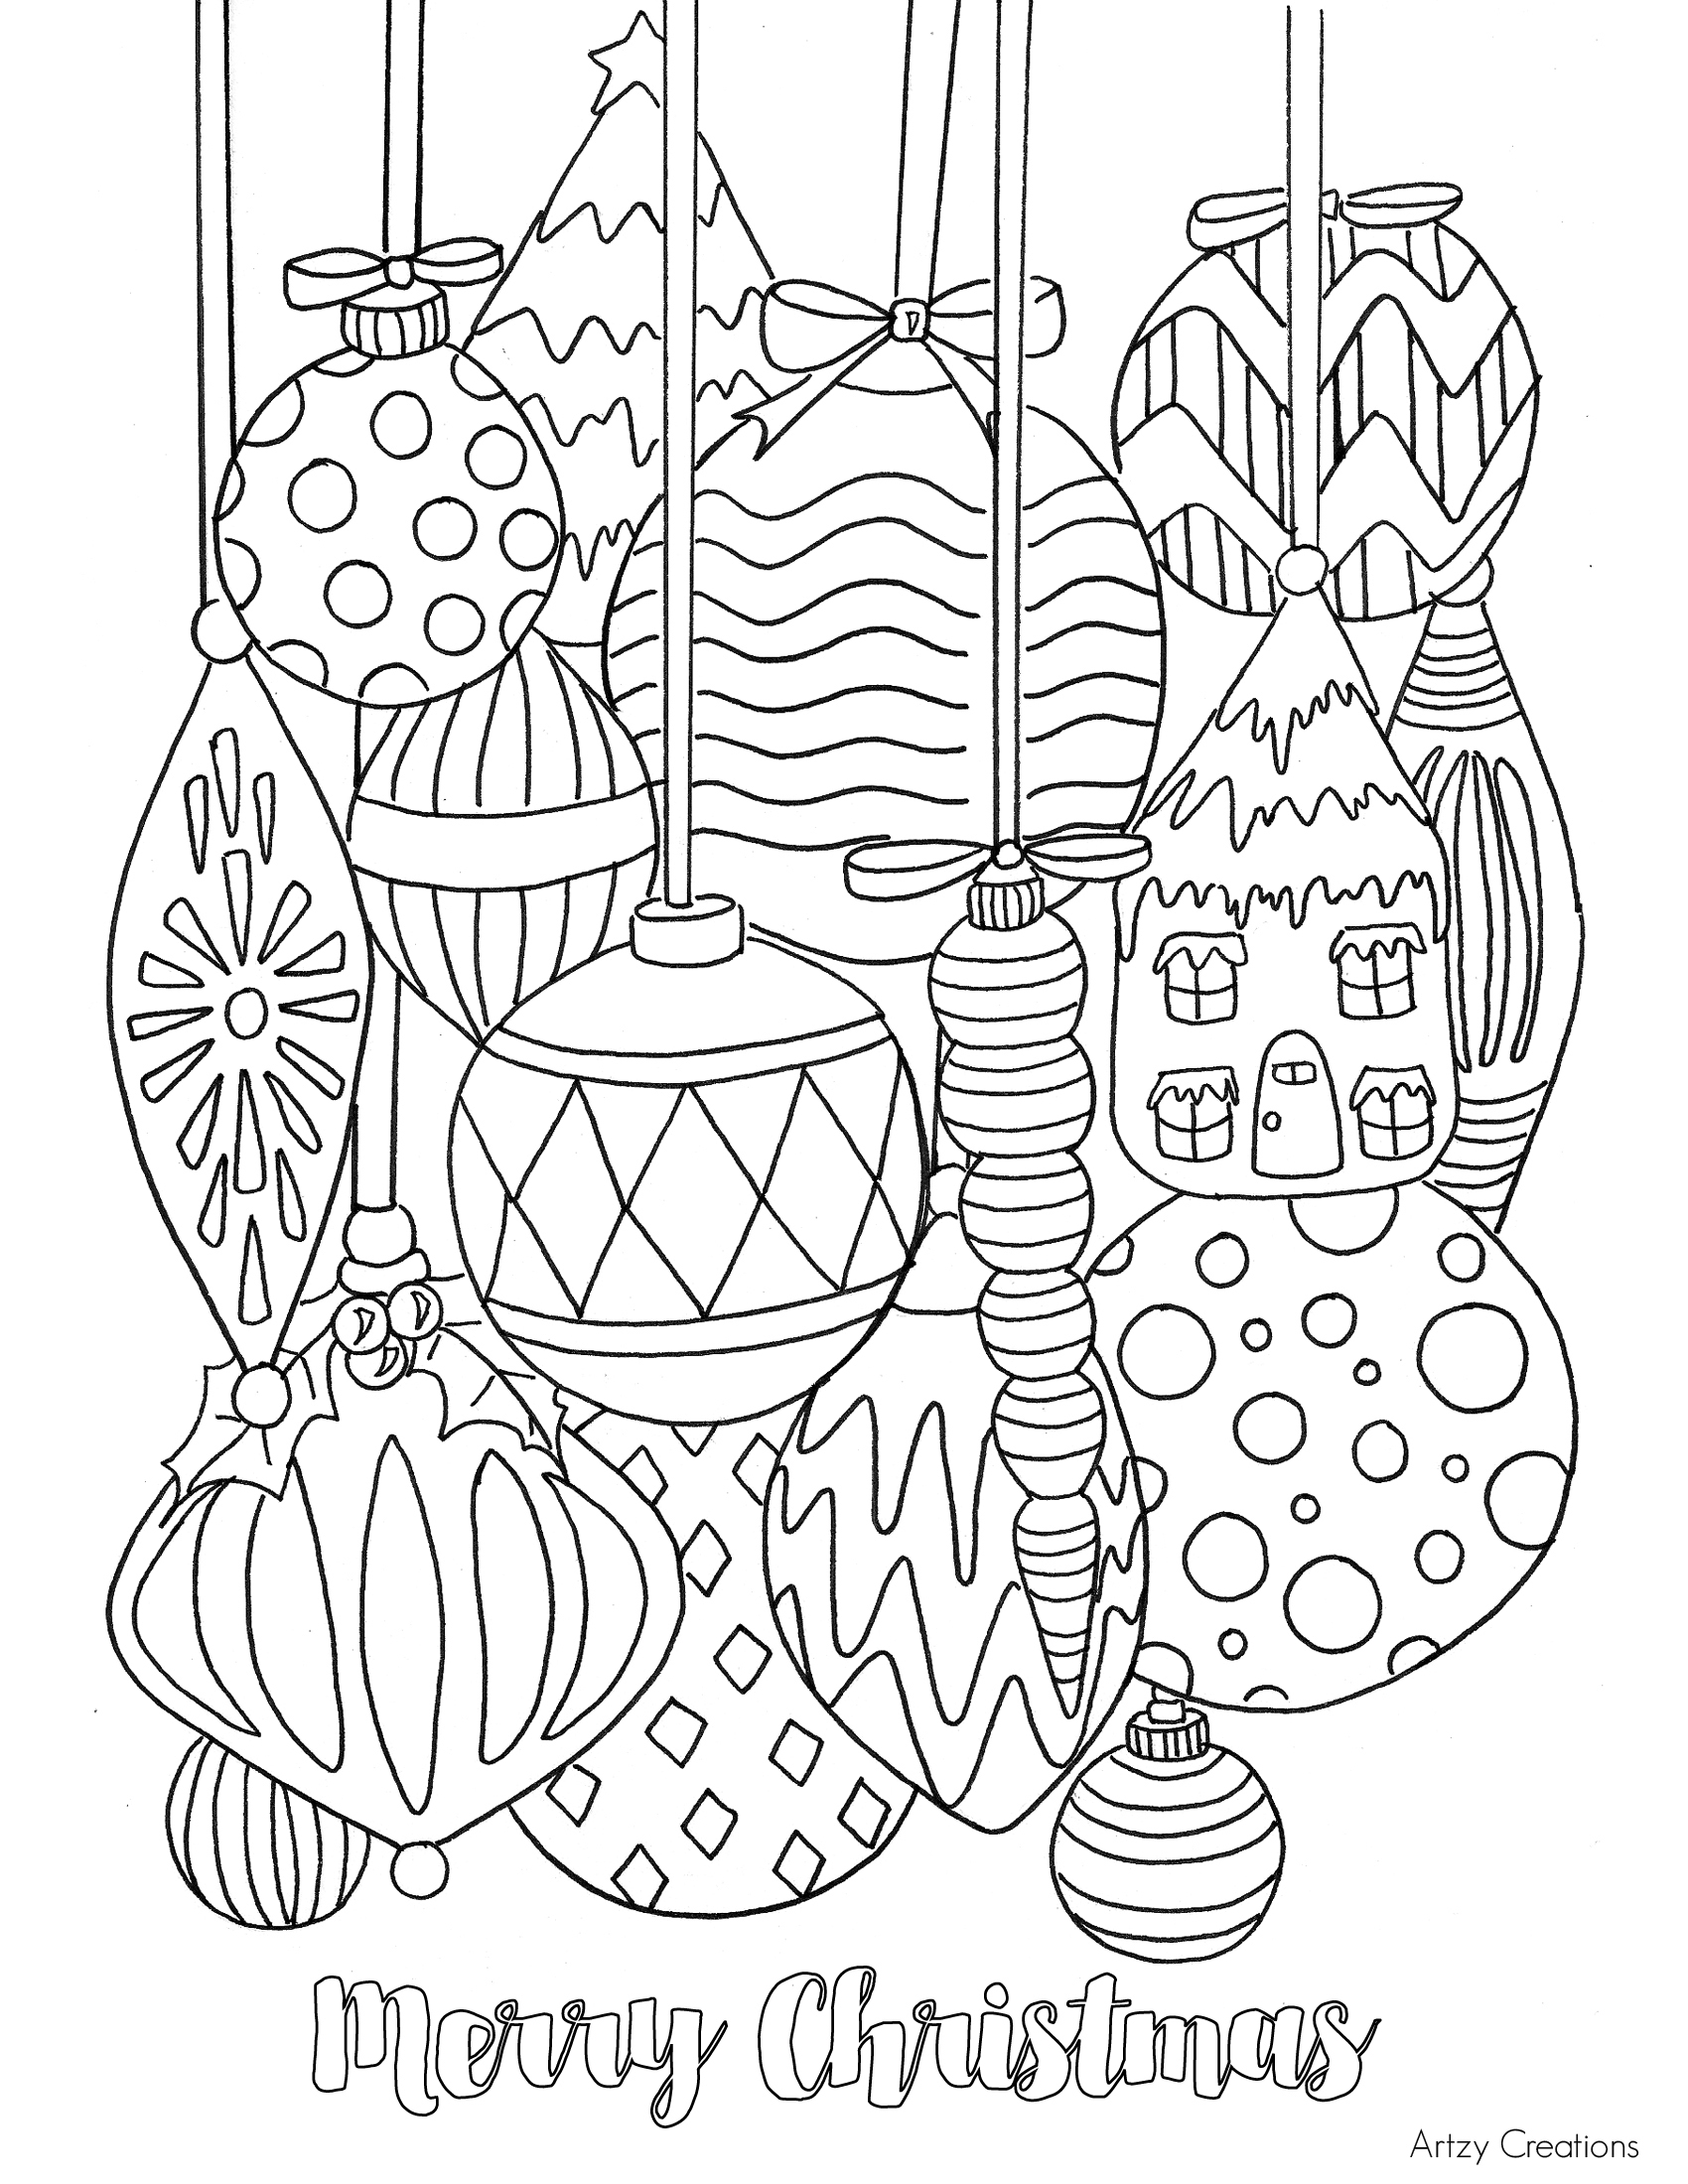 Christmas Coloring Pages Printable With Numbers Free To Print For Adults